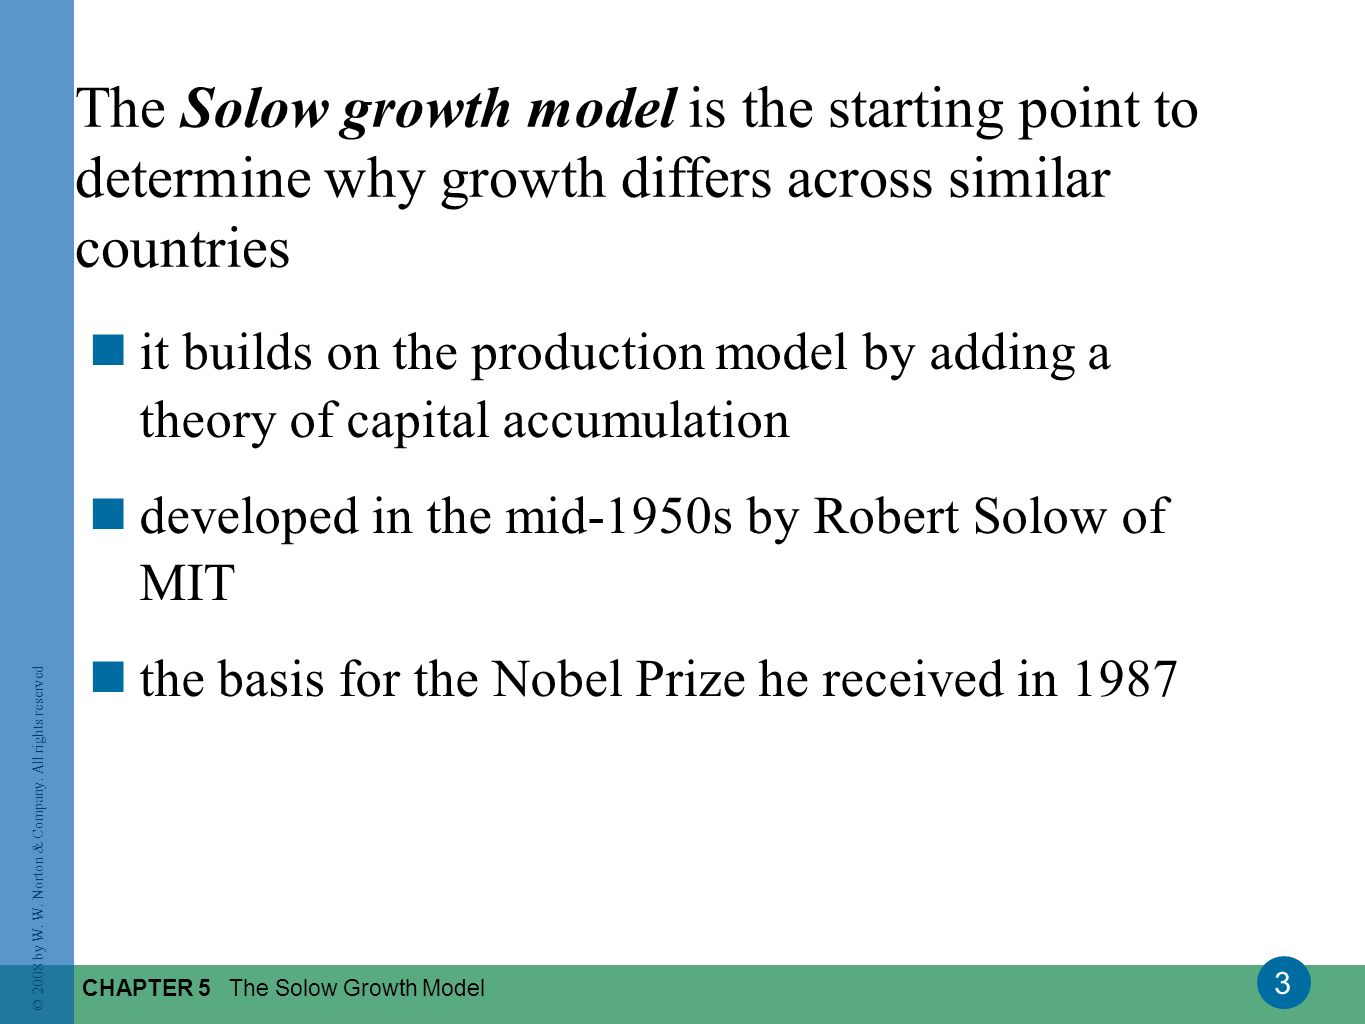 The Solow growth model is the starting point to determine why growth differs across similar countries